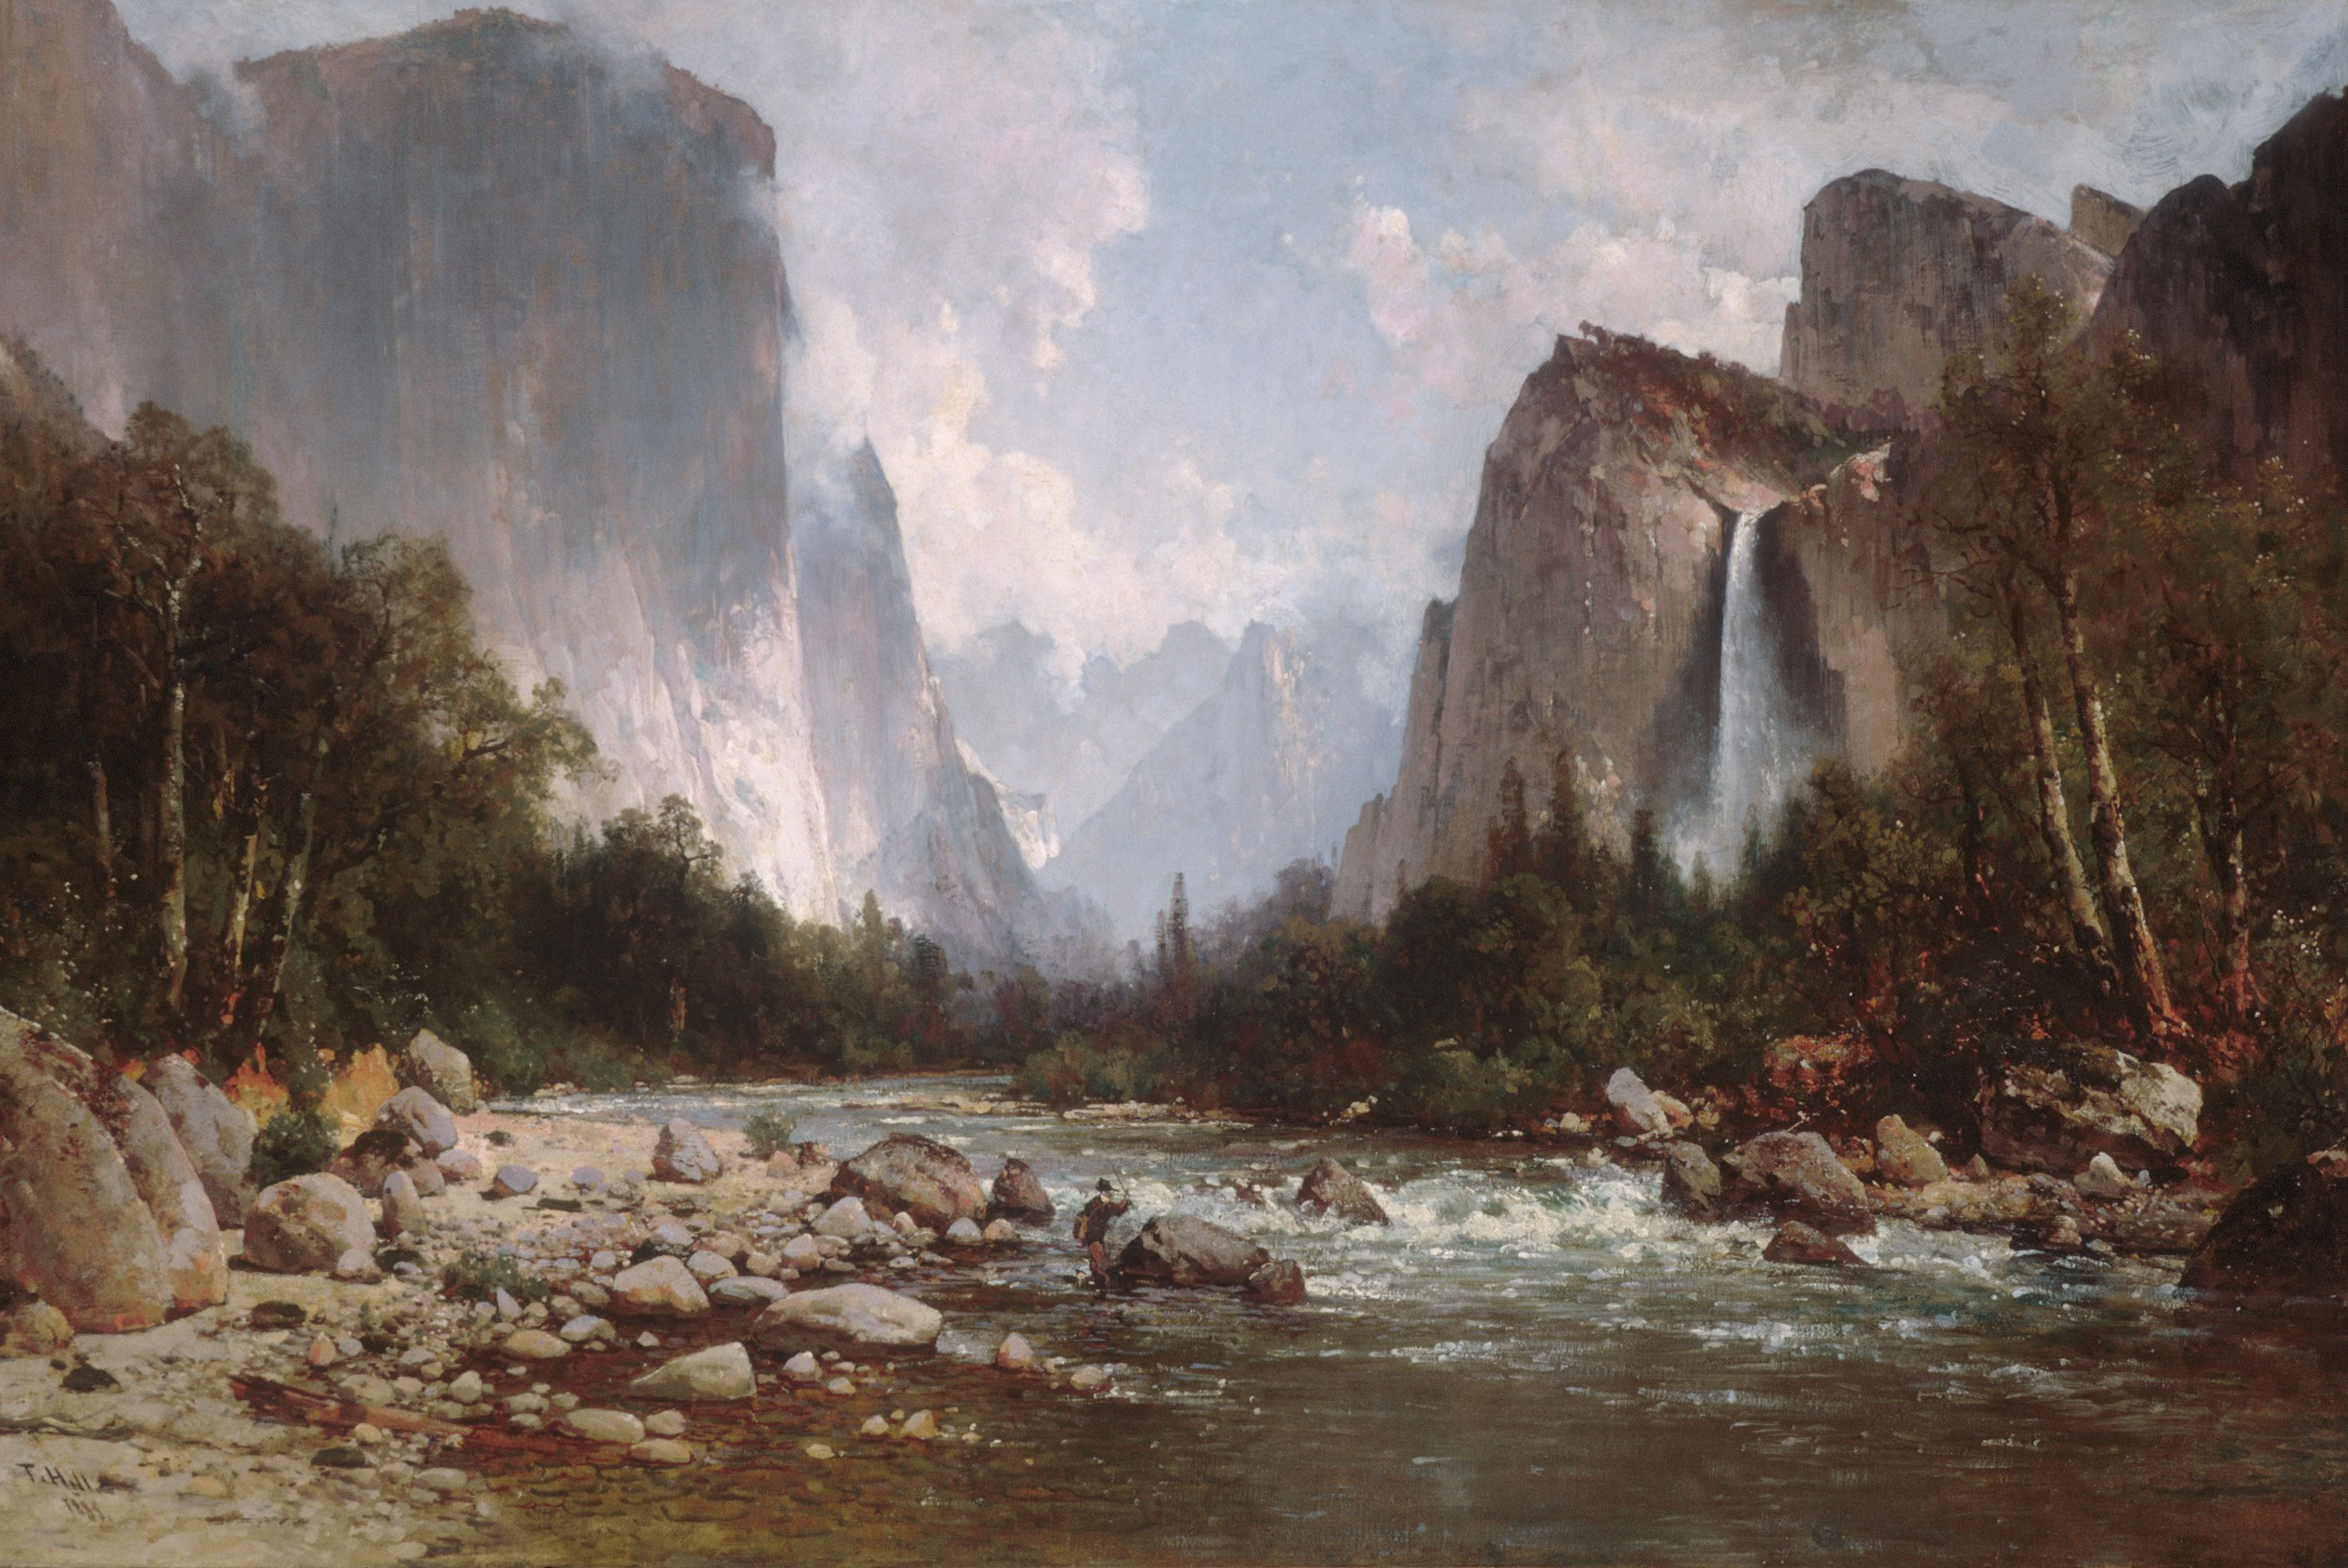 VIEW OF YOSEMITE VALLEY by Thomas Hill (1885, which was hung at the luncheon for President Obama's first inauguration. (Source: https://www.metmuseum.org/art/collection/search/11101)